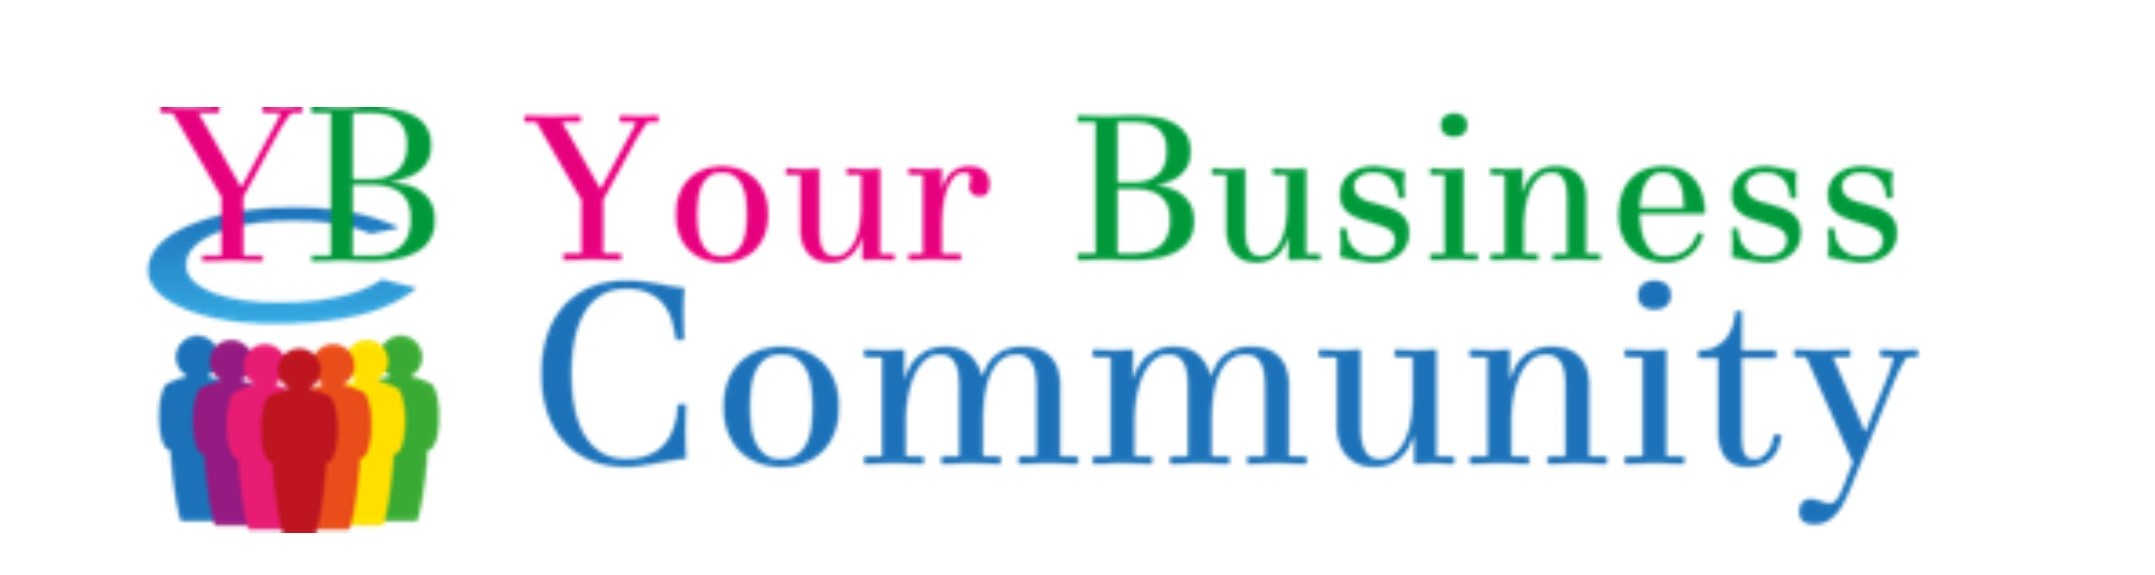 Your Business Community